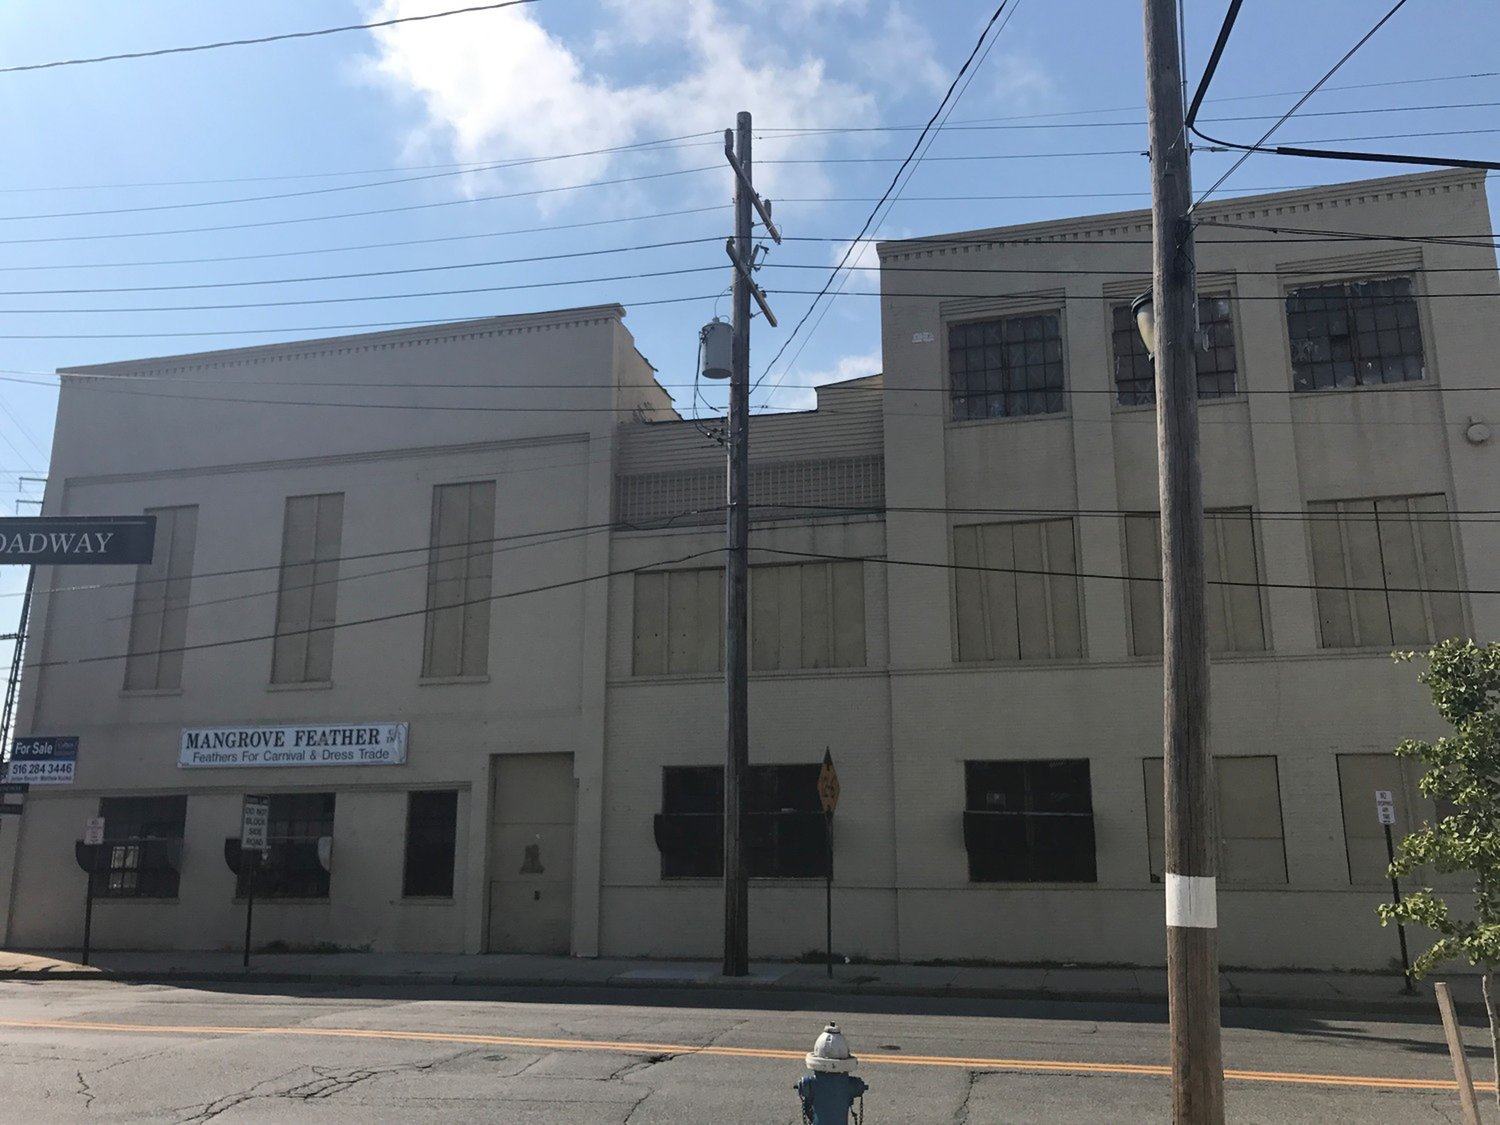 The former feather factory building has been vacant since 2008, and several village administrations have sought to redevelop it.